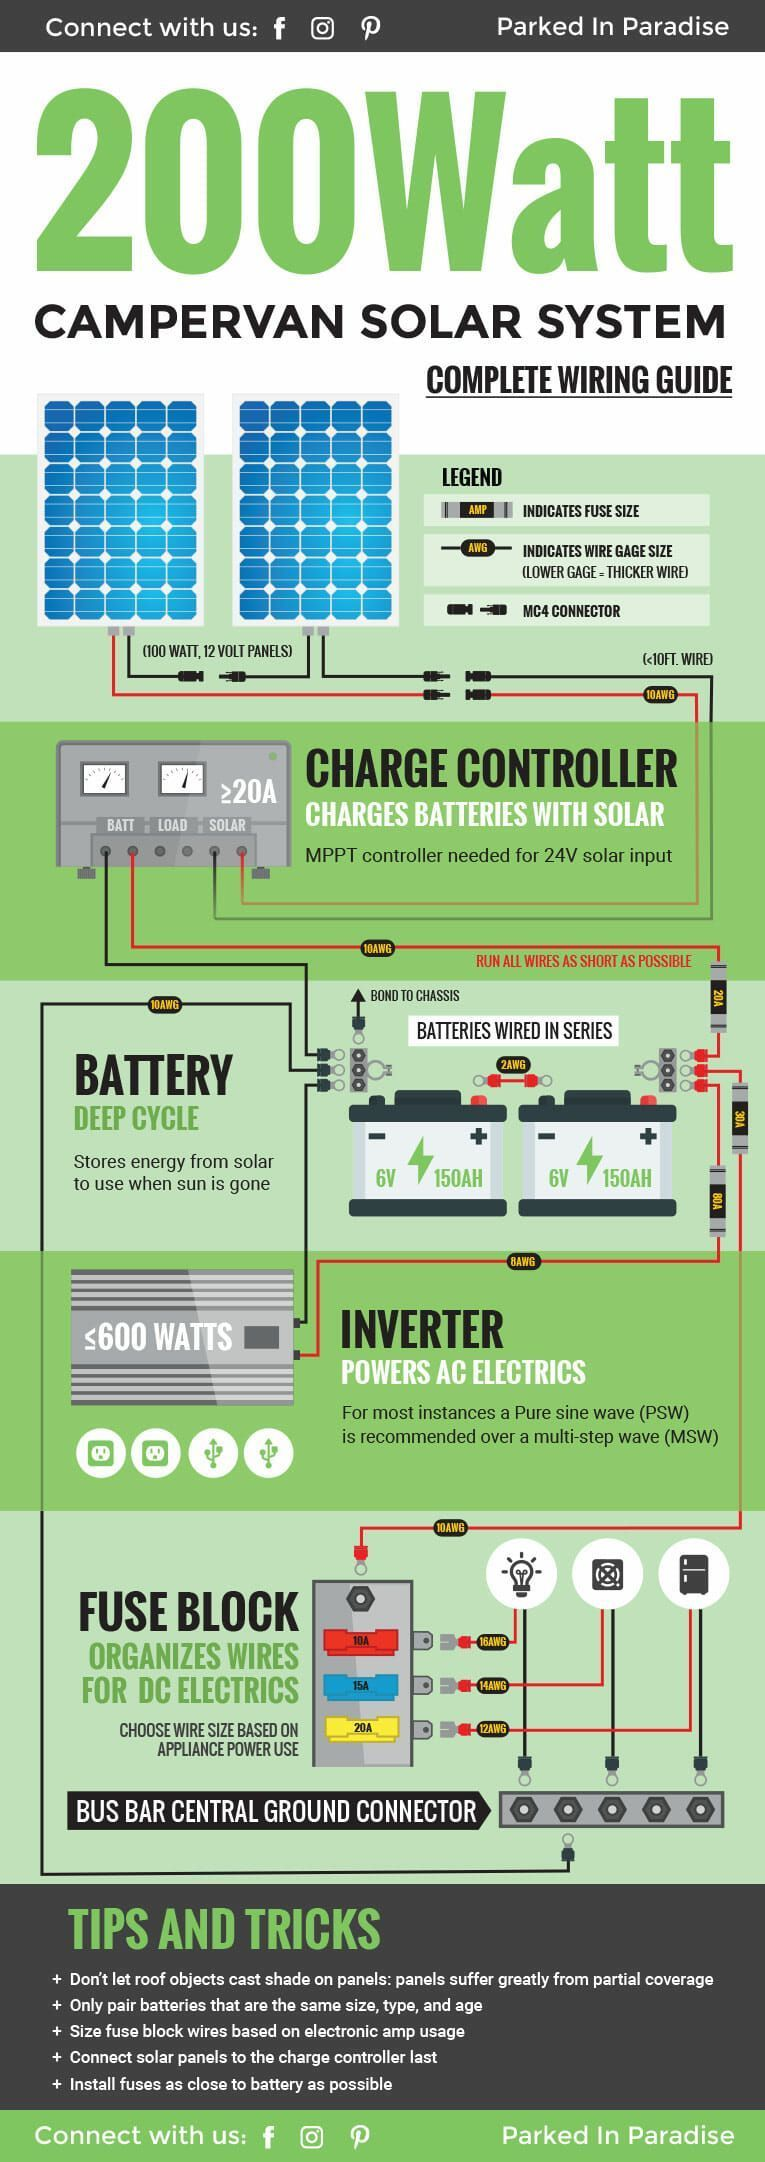 small resolution of complete diy wiring guide for a 200 watt solar panel system perfect diy garage wiring